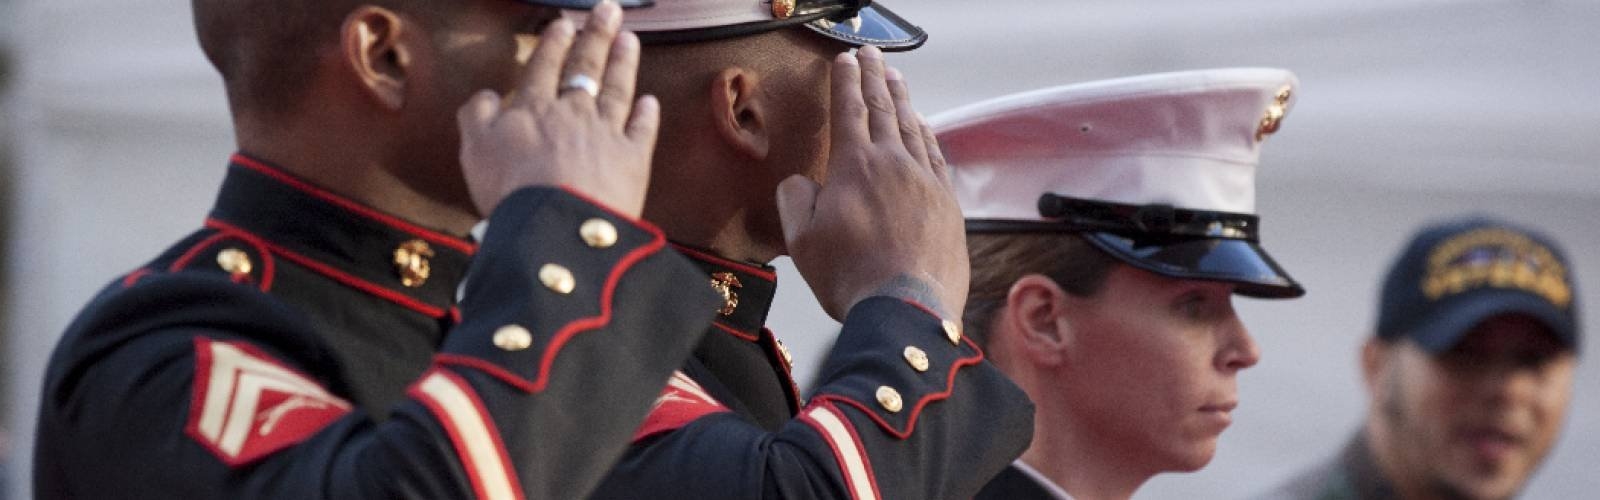 Two men and a woman in U.S. Marine Corps dress uniforms salute.